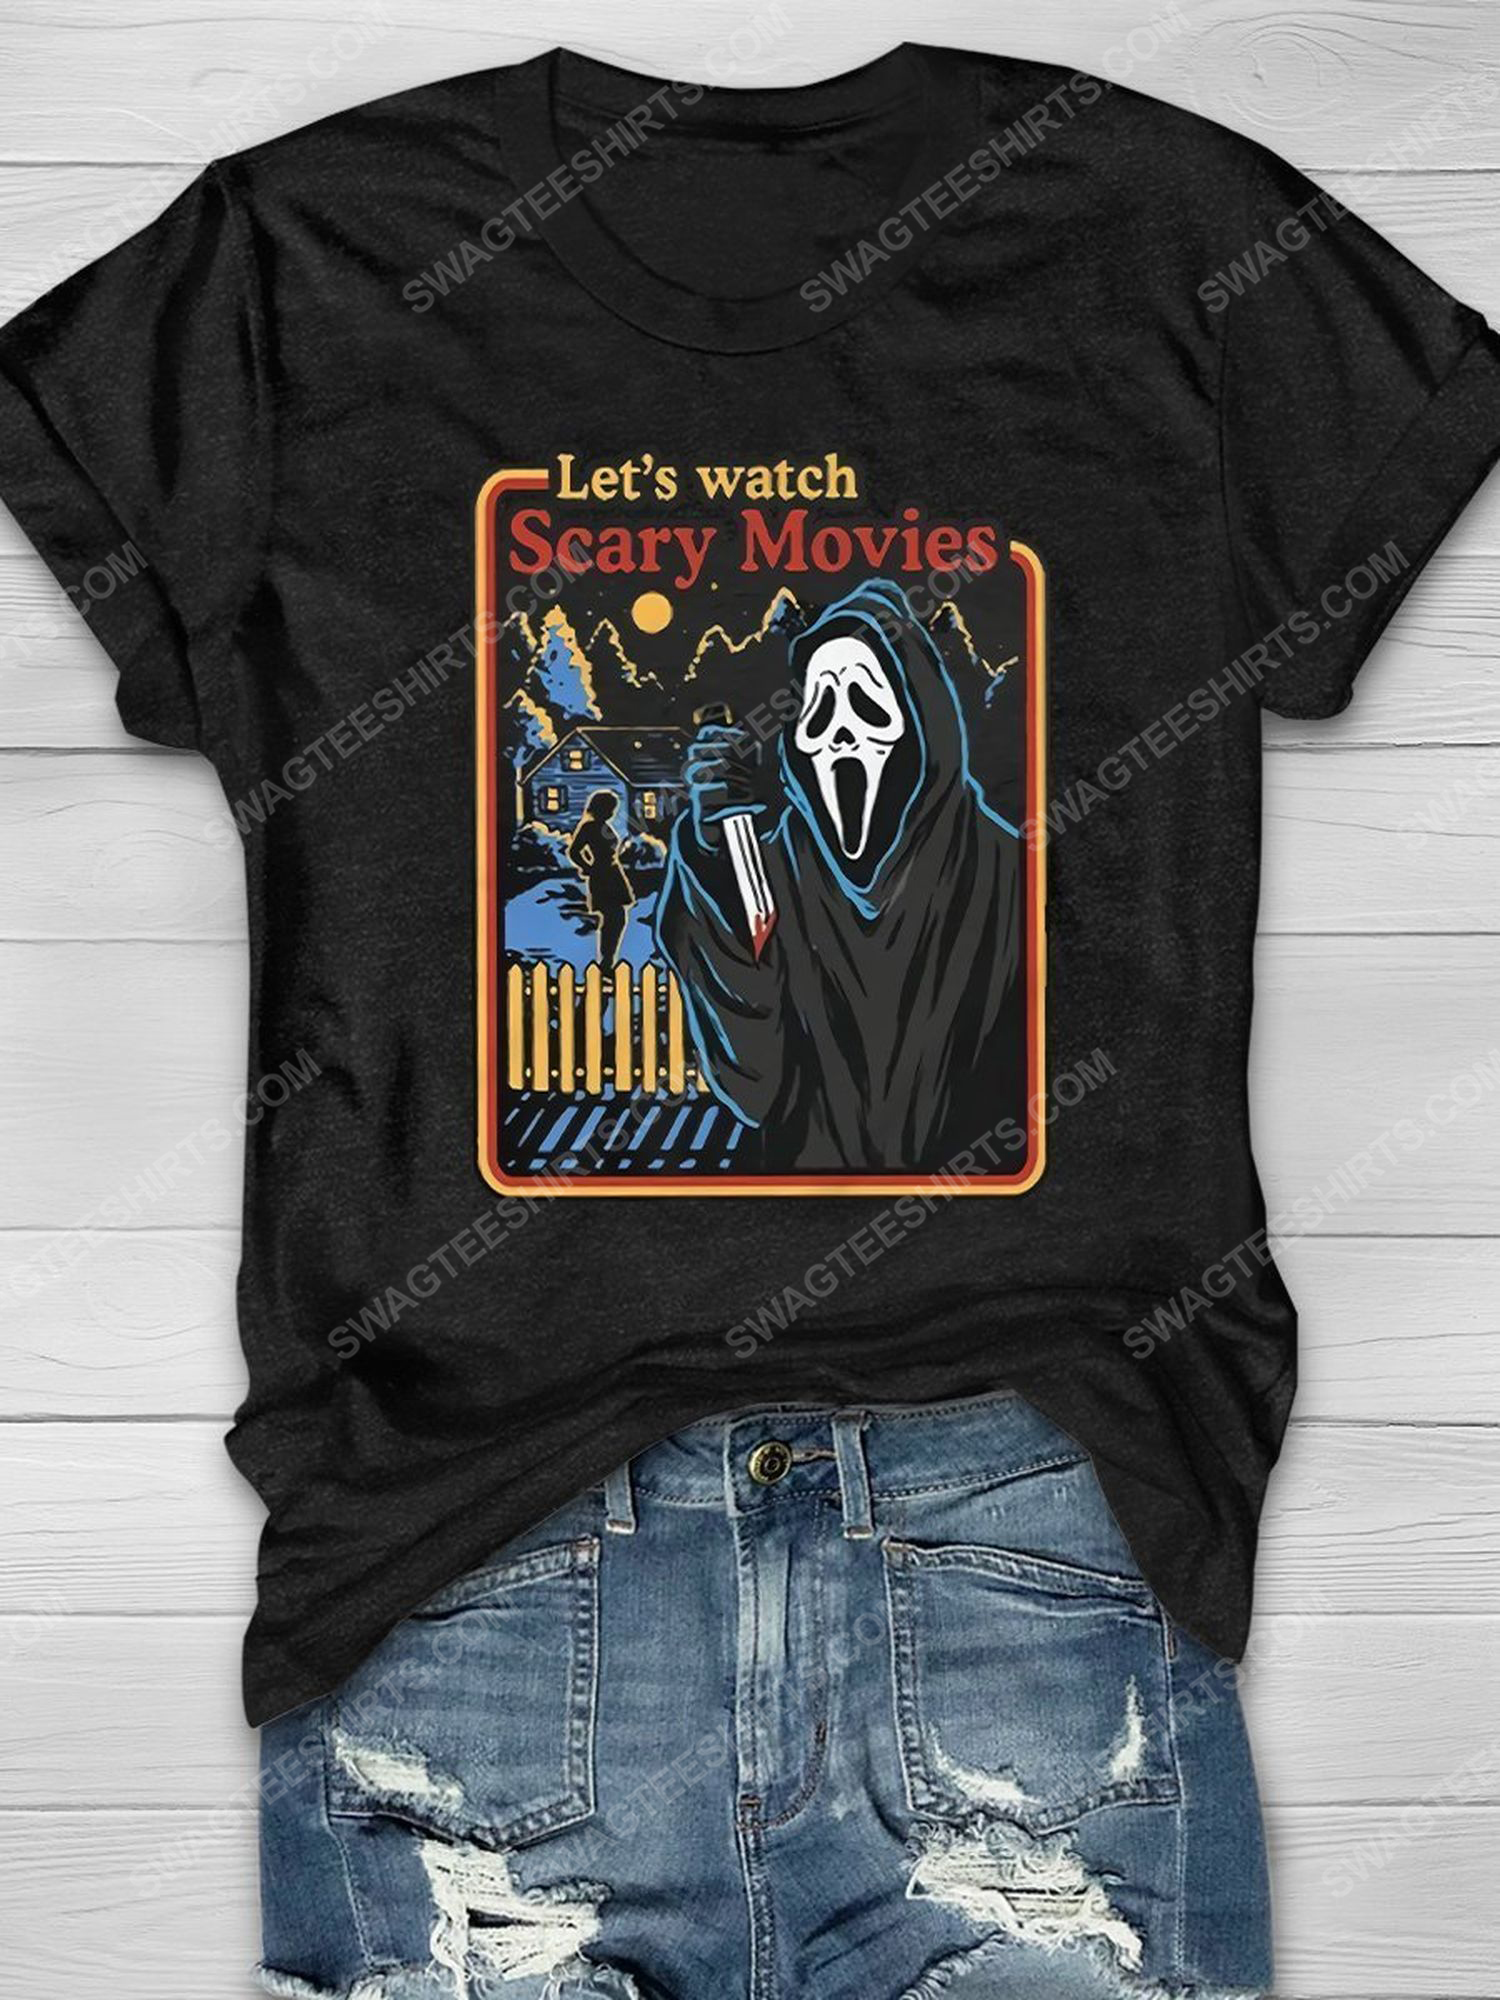 Halloween screaming movie let's watch scary movies shirt 1